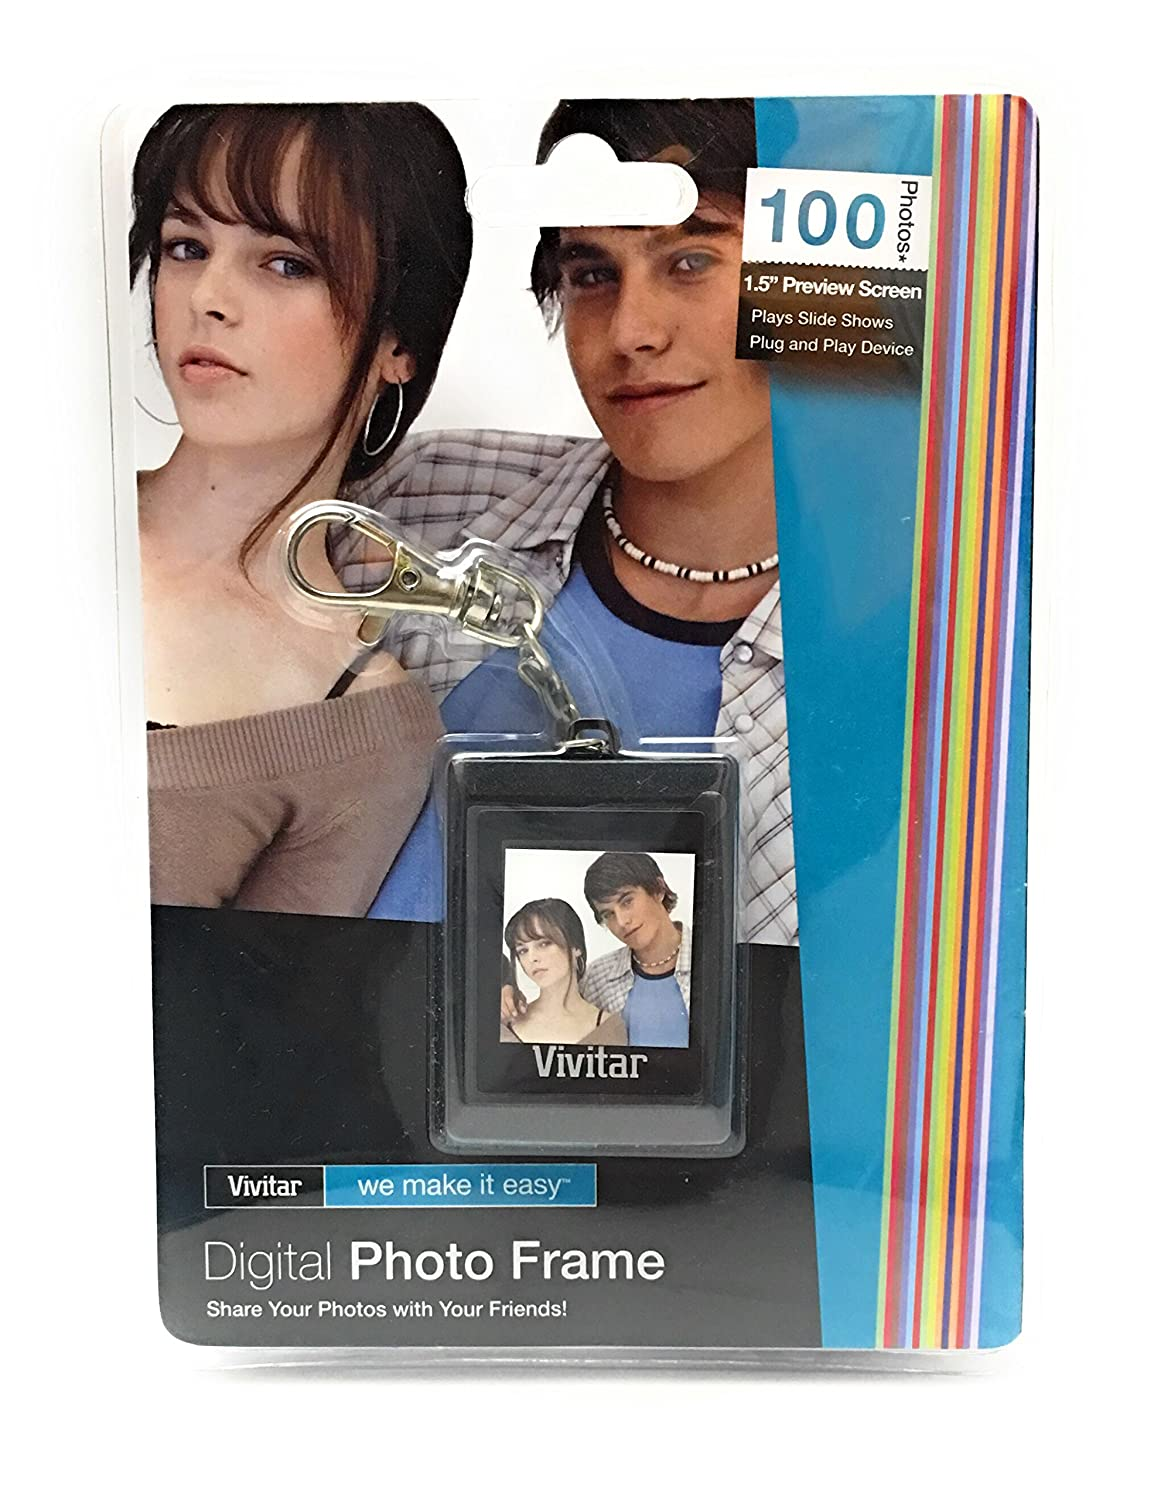 Digital Photo Frame 1.5' Preview Screen by Vivitar Sakar 4332087074